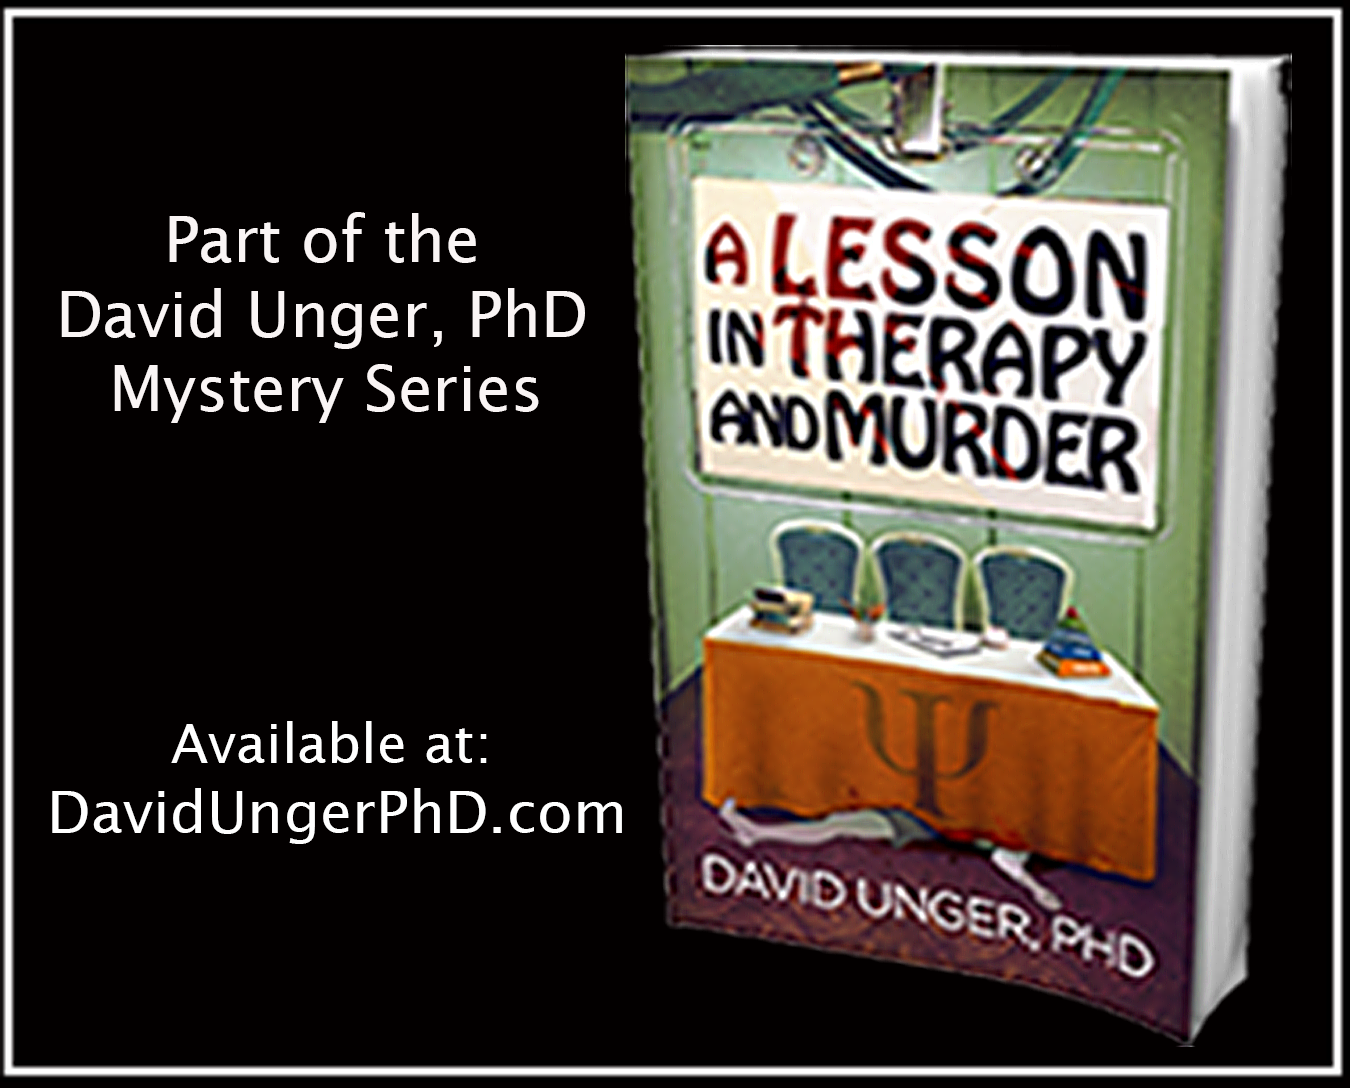 A Lesson in Therapy and Murder